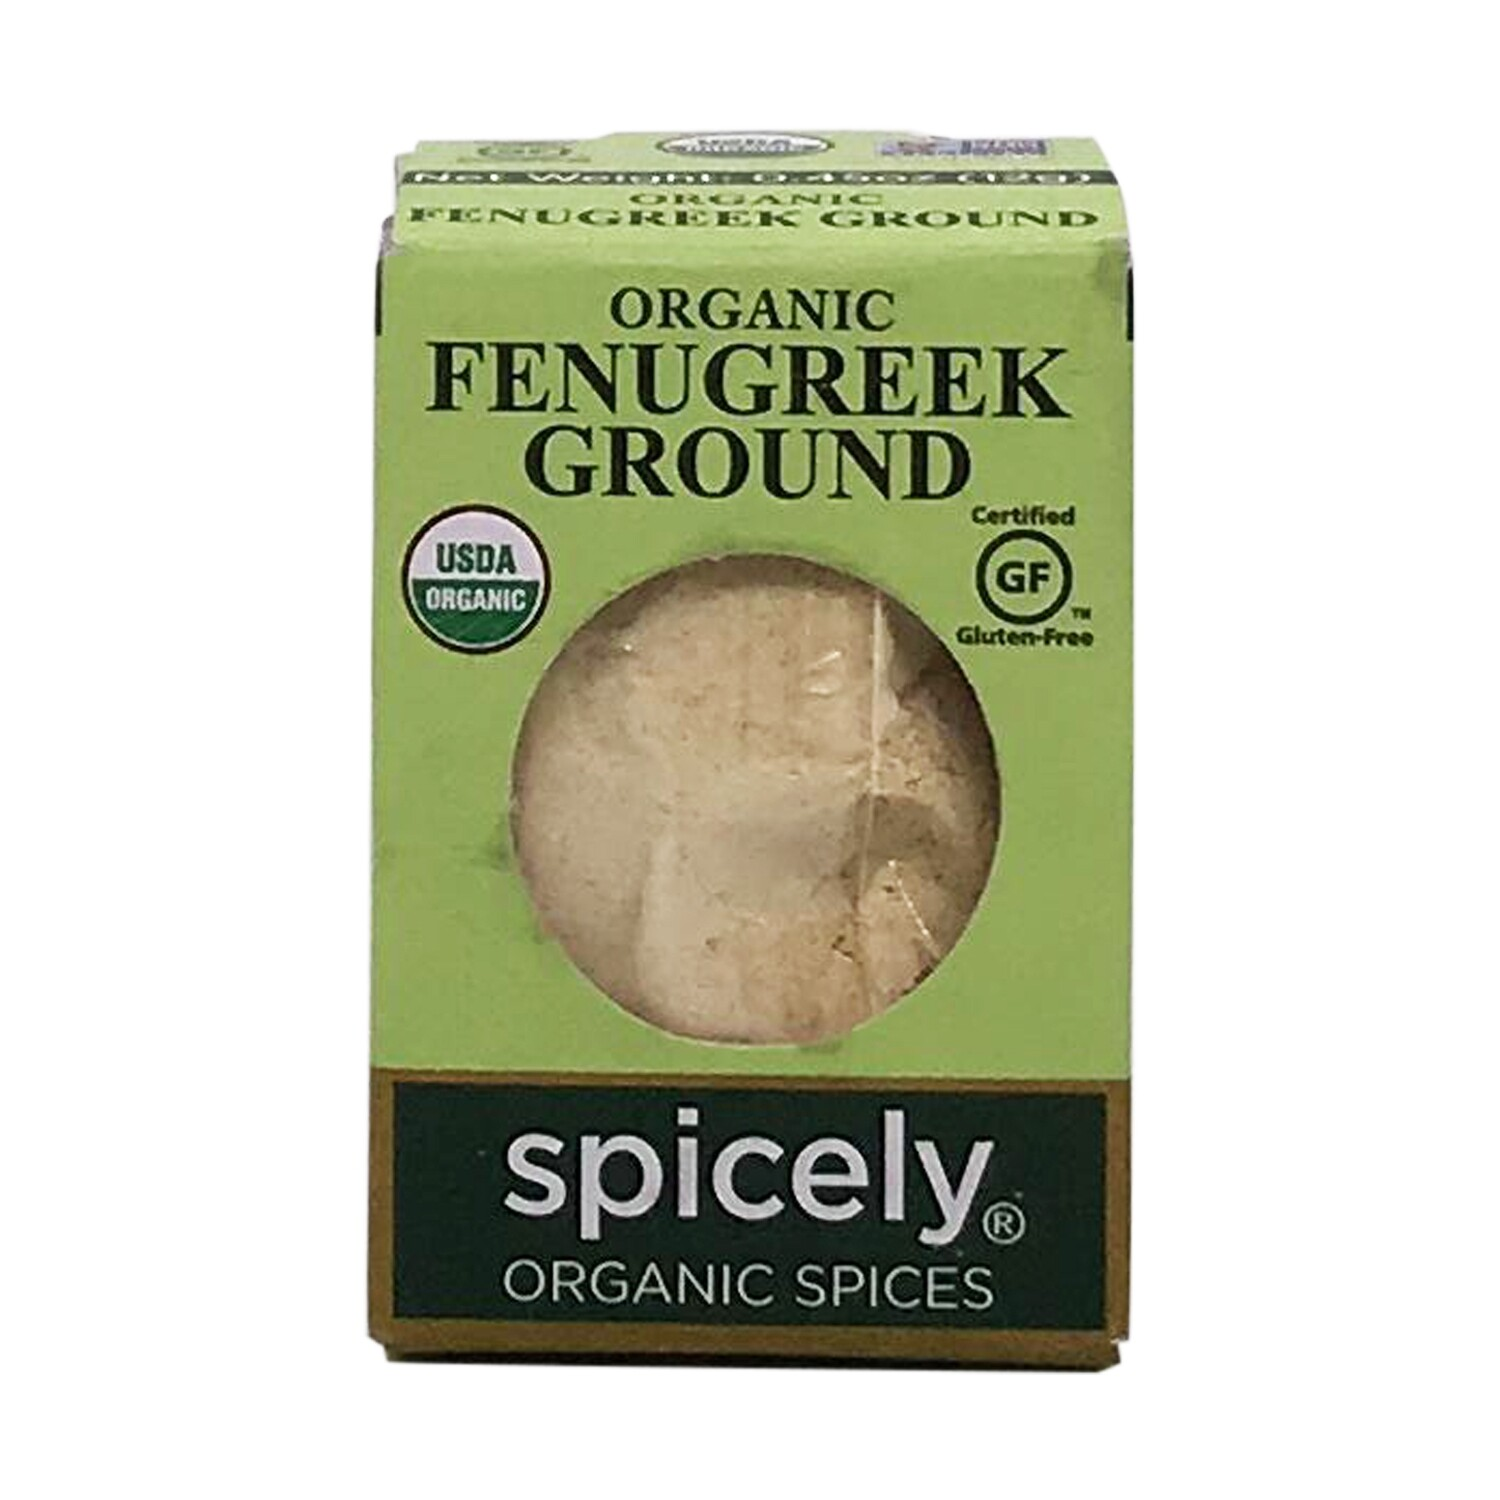 Organic Ground Fenugreek